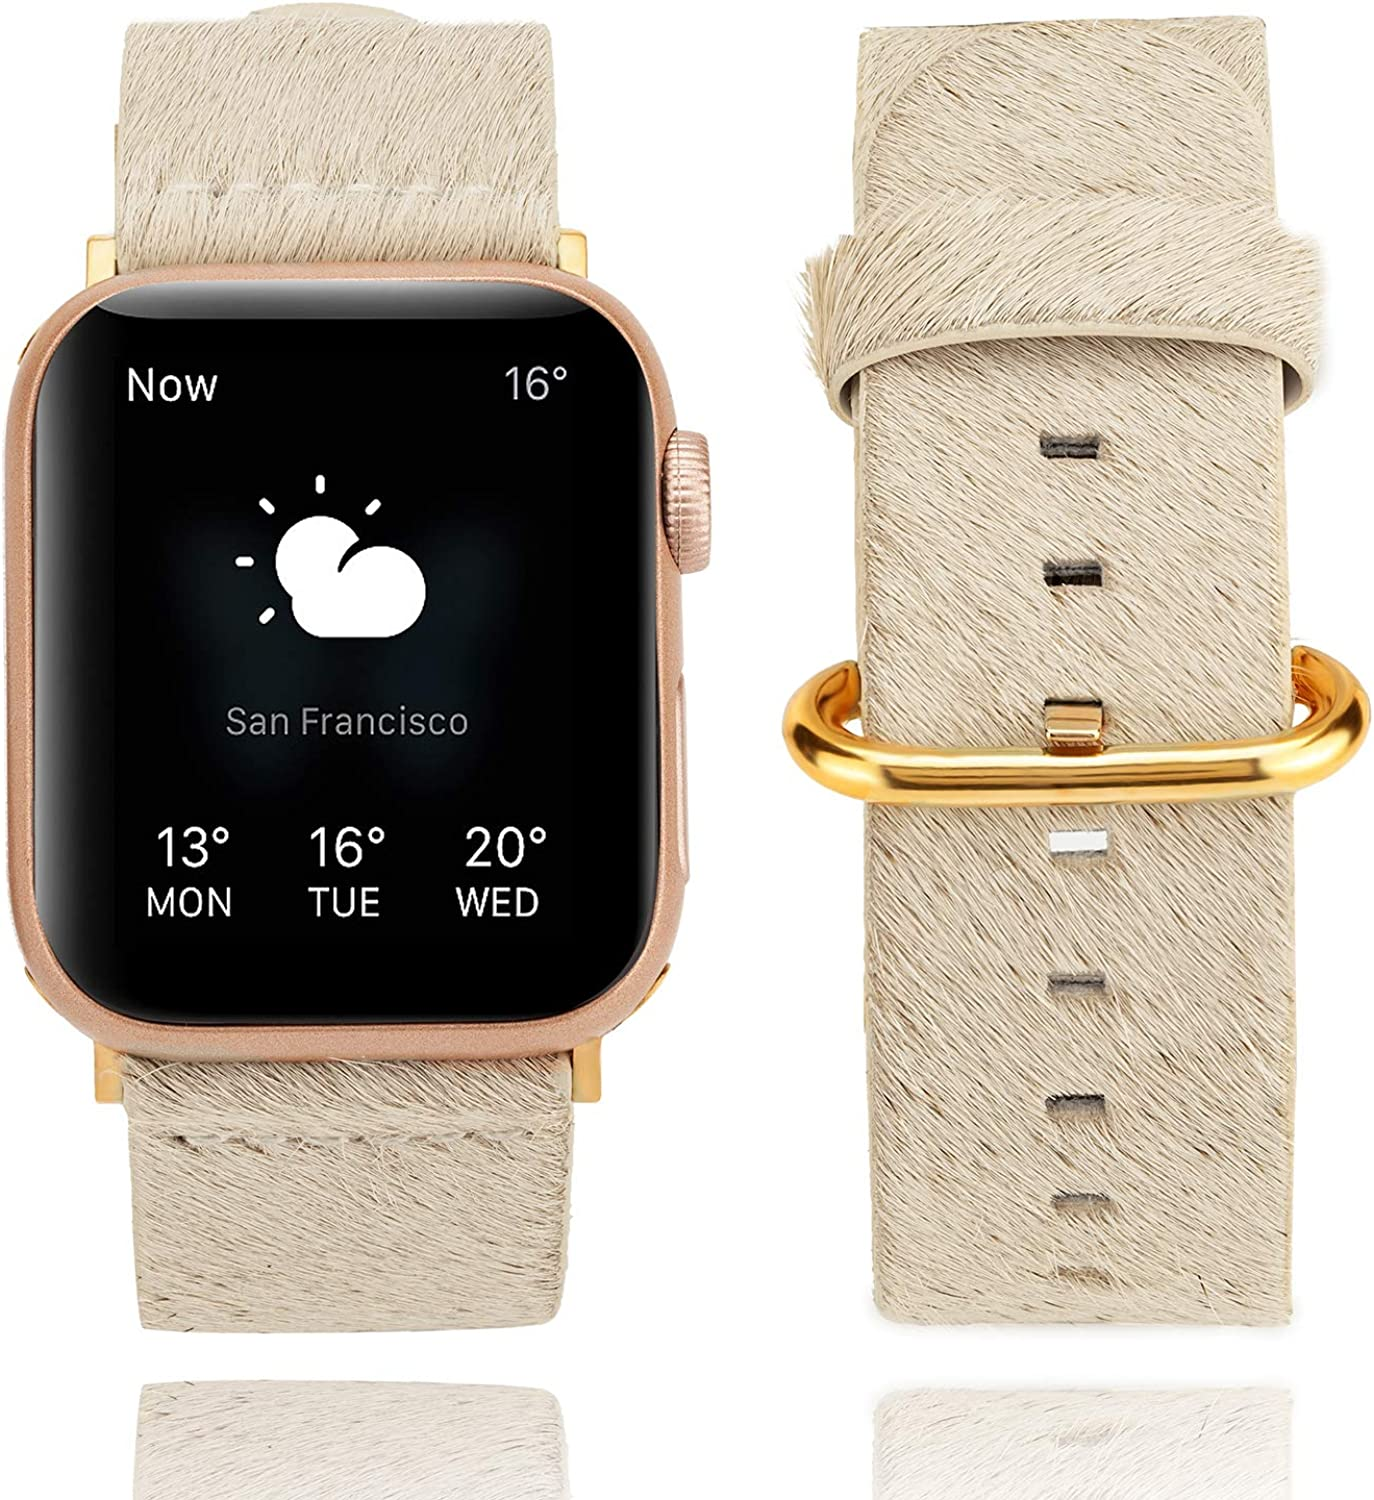 TINOBAND Genuine Leather Bands Compatible with Apple Watch Band 38mm/40mm, 42mm/44mm for Women Men, Leather Replacement Strap for iWatch SE Series 6/5/4/3/2/1